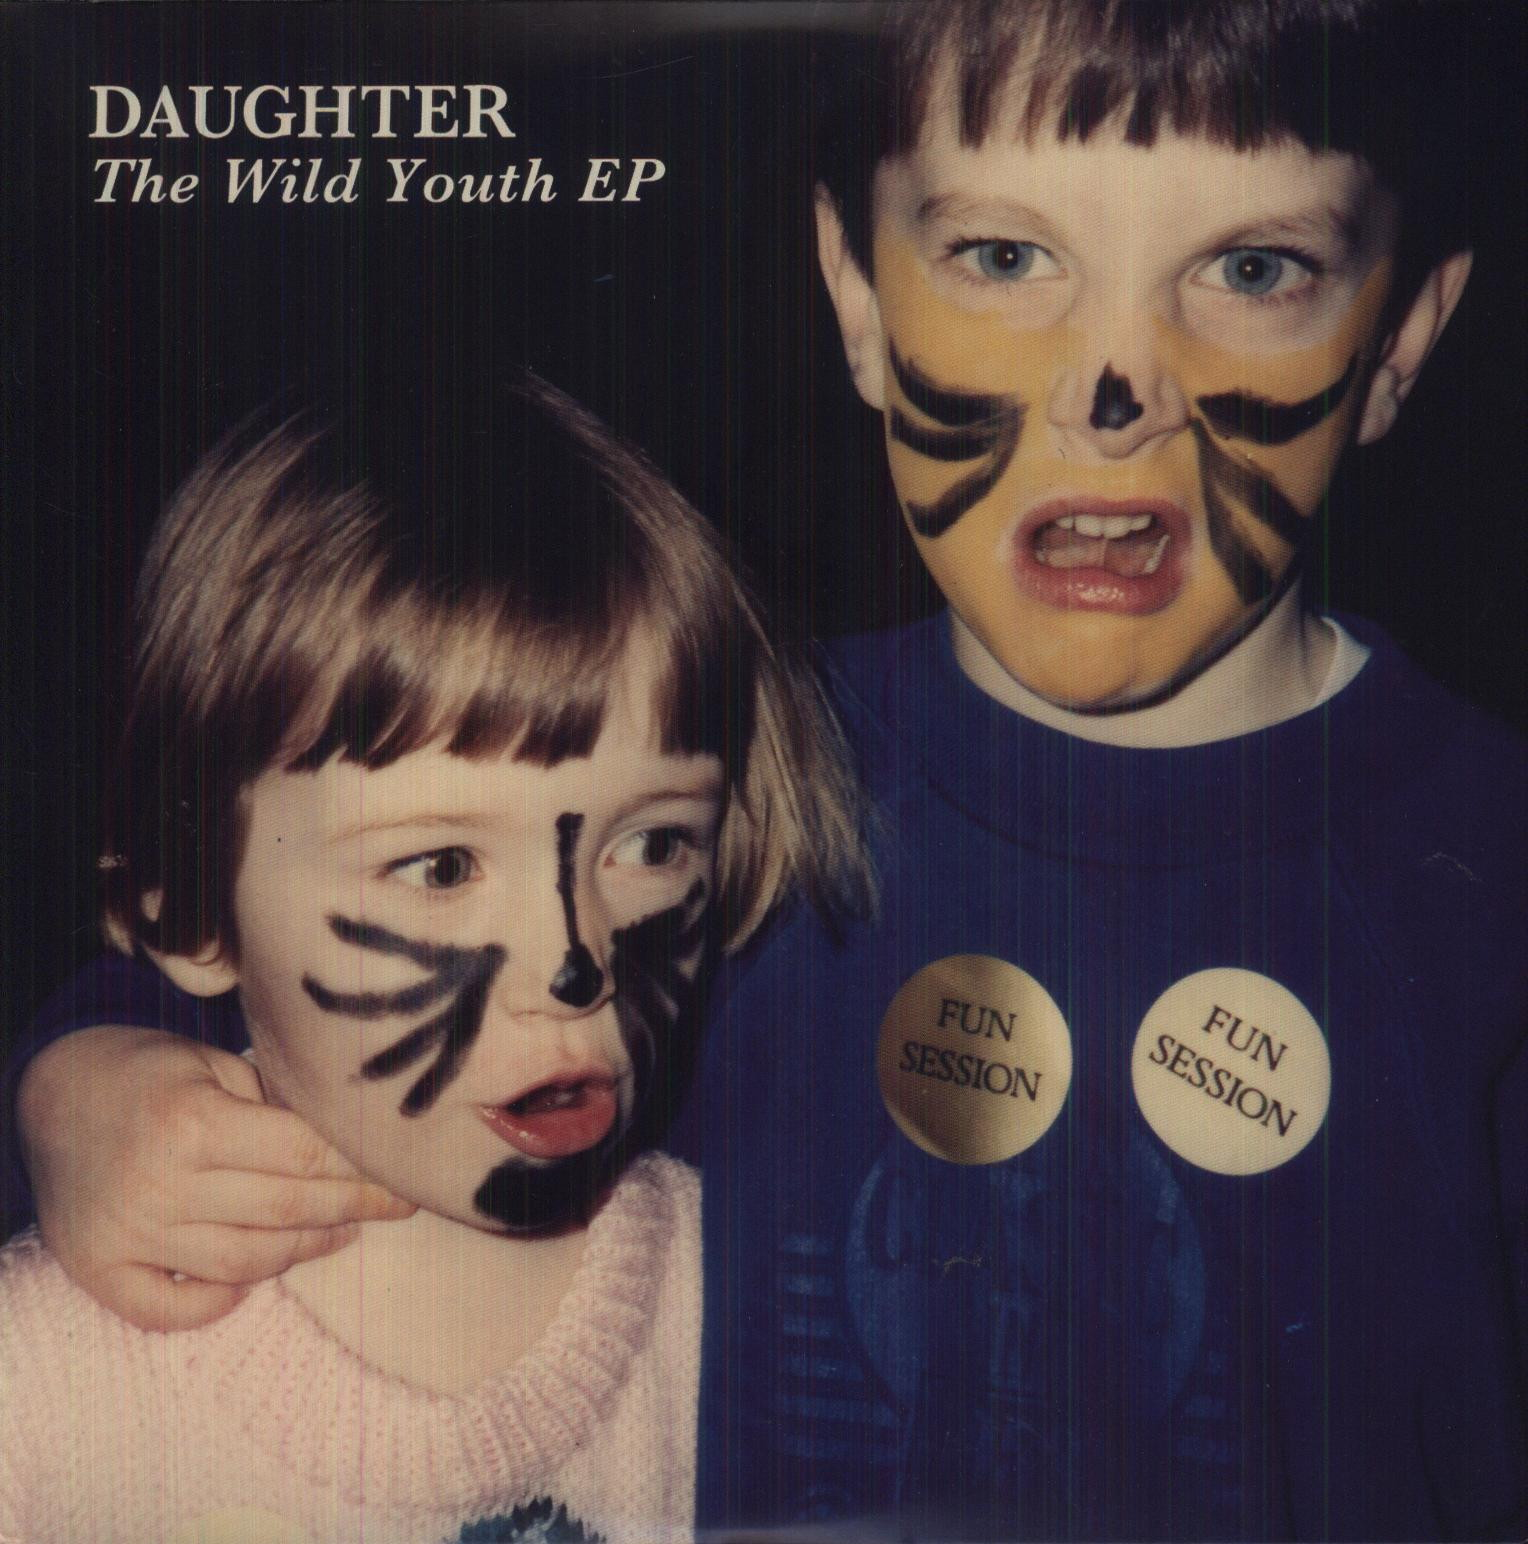 The Wild Youth Ep Daughter Sodwee Com